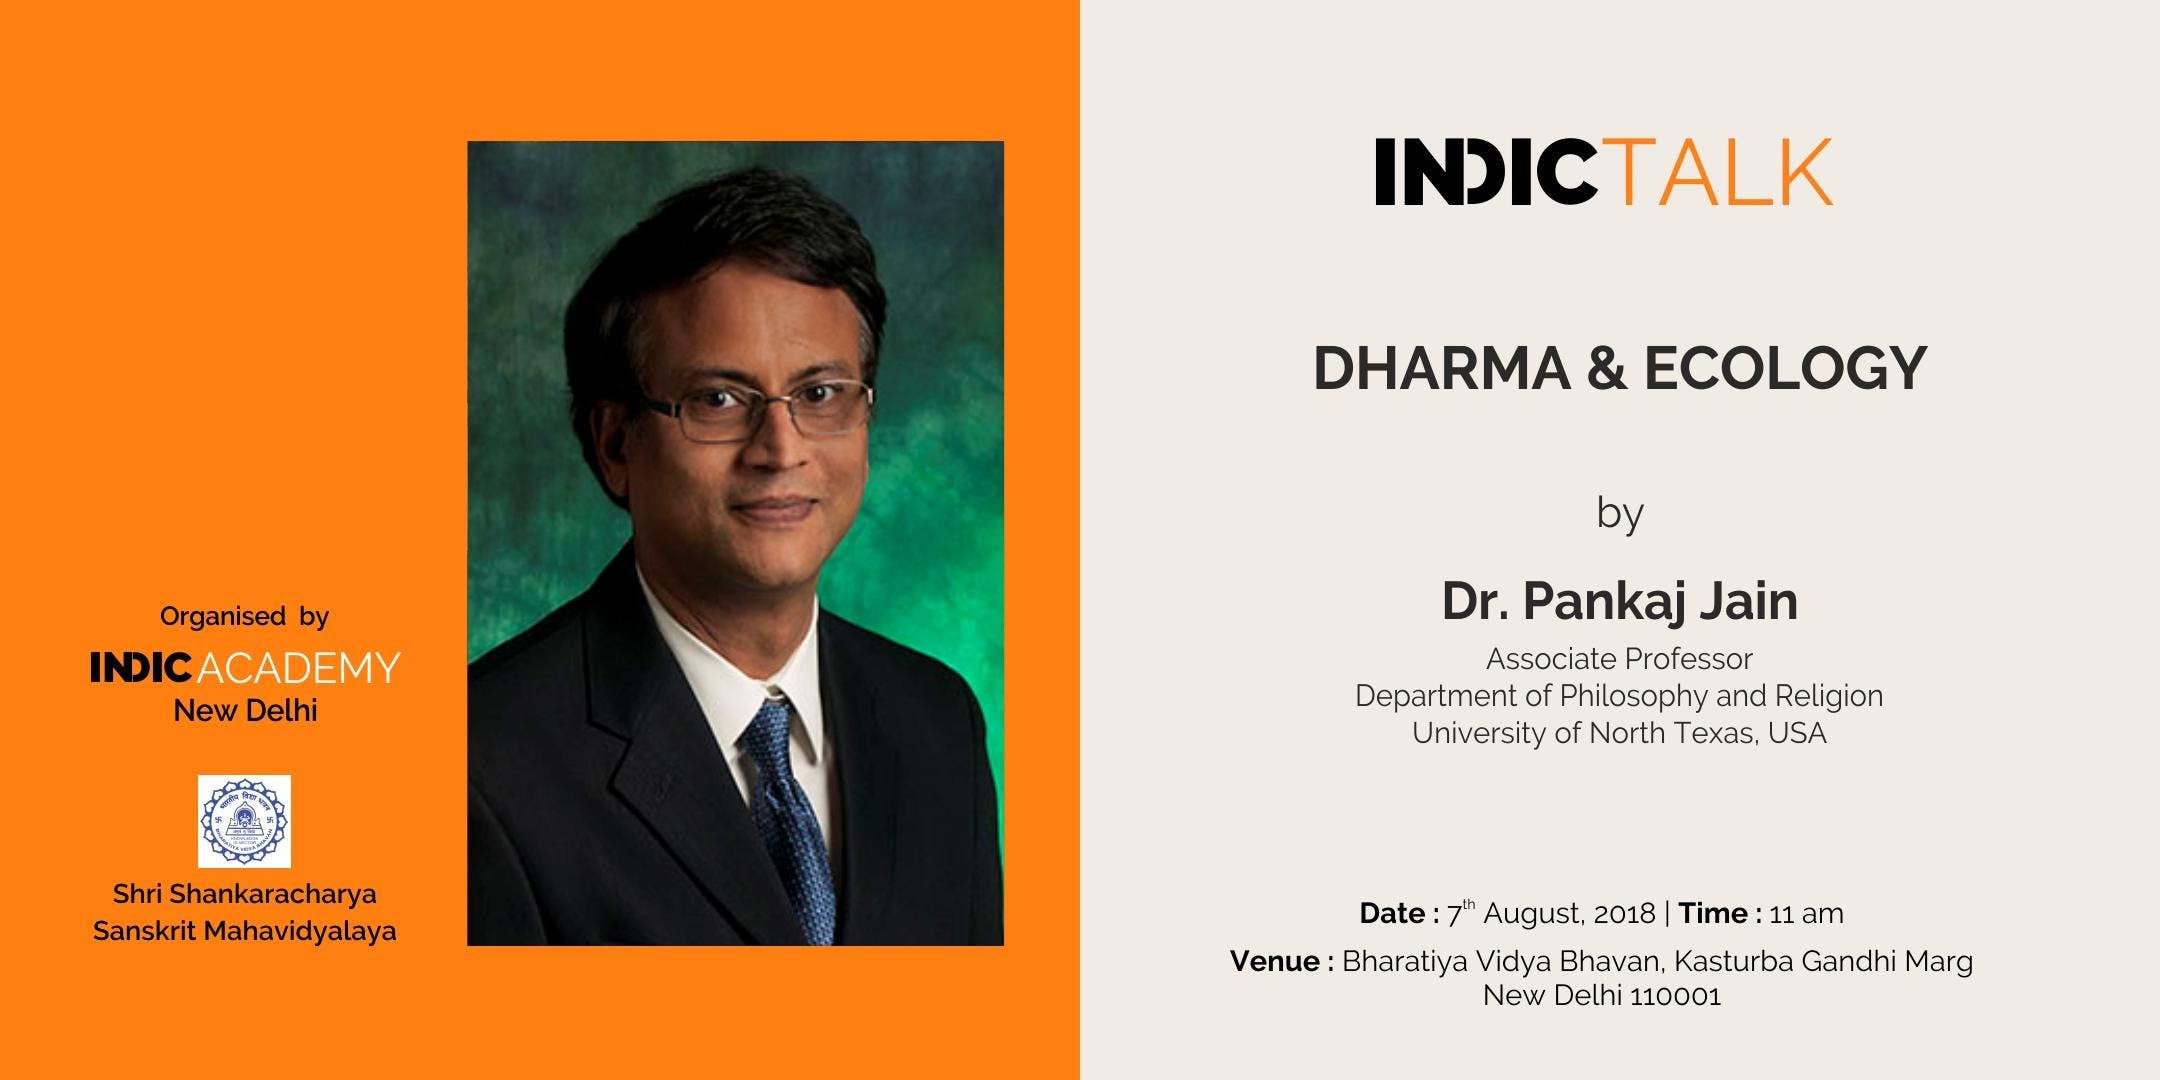 Indic Talk Dharma and Ecology by Dr. Pankaj Jain